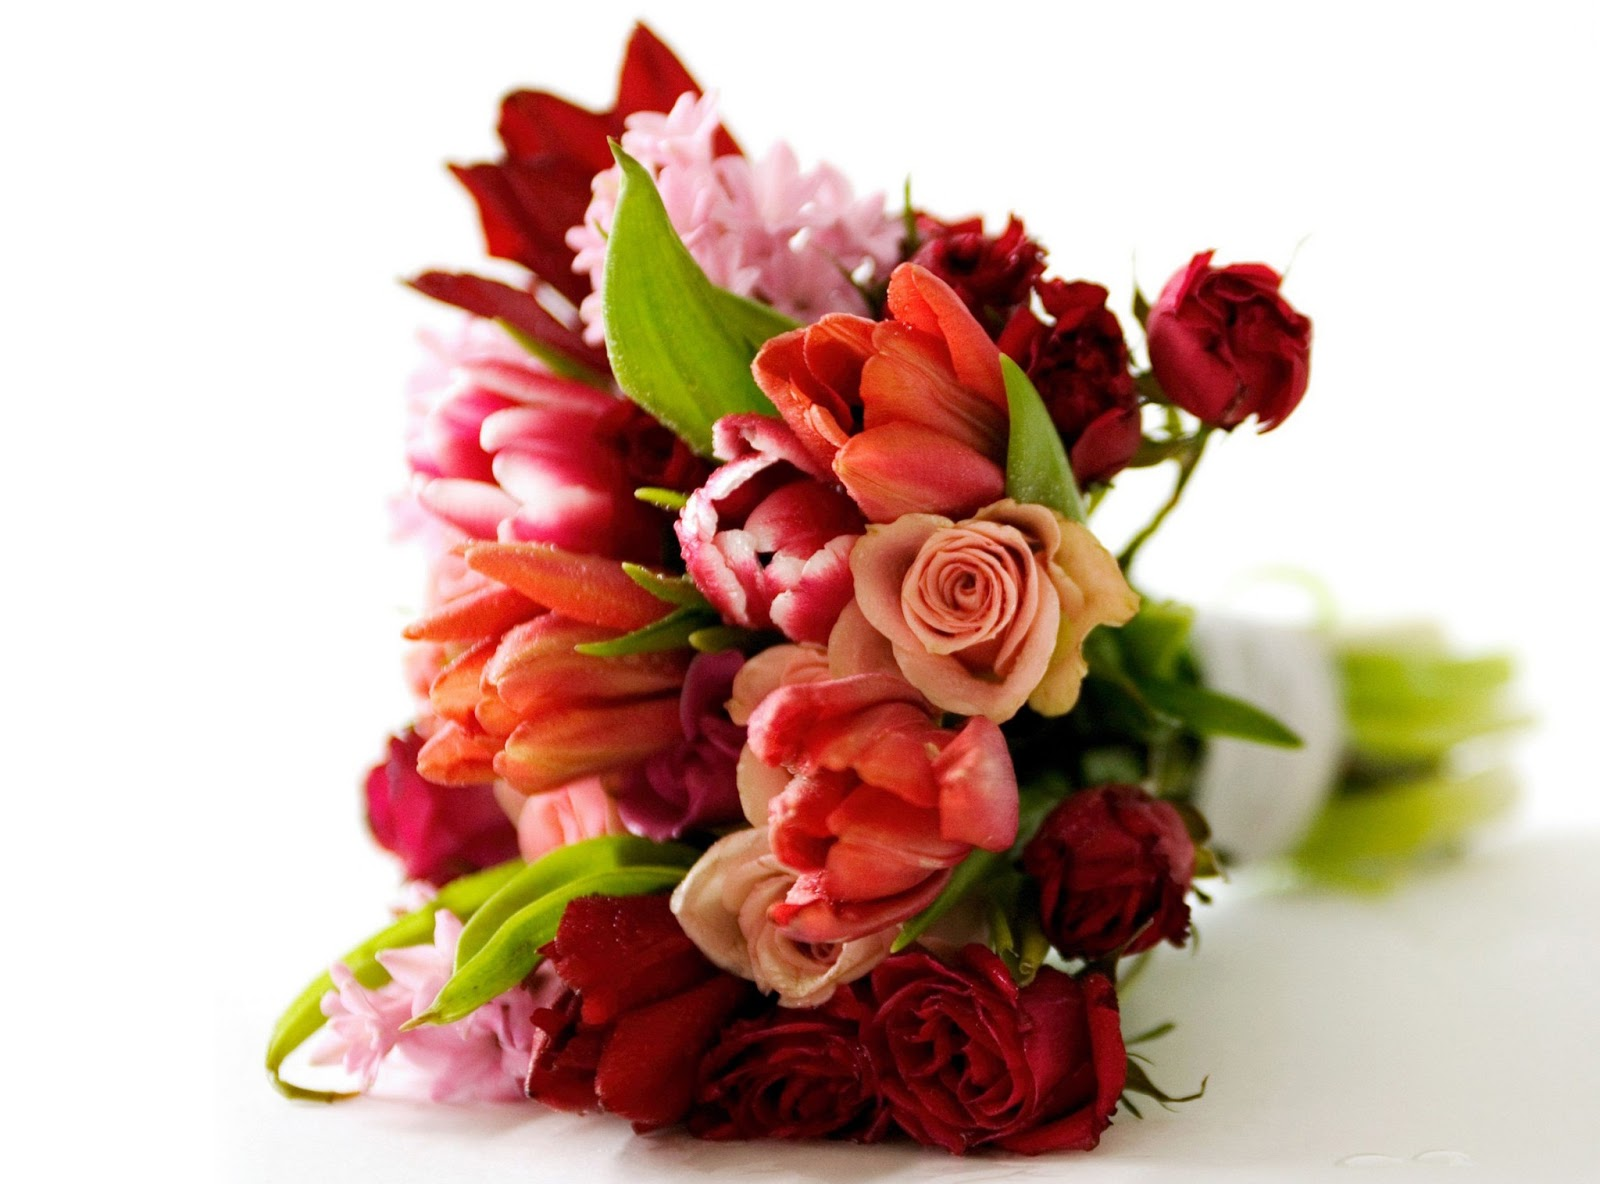 Valentines flowers flowers wallpapers - Valentine s day flower wallpaper ...